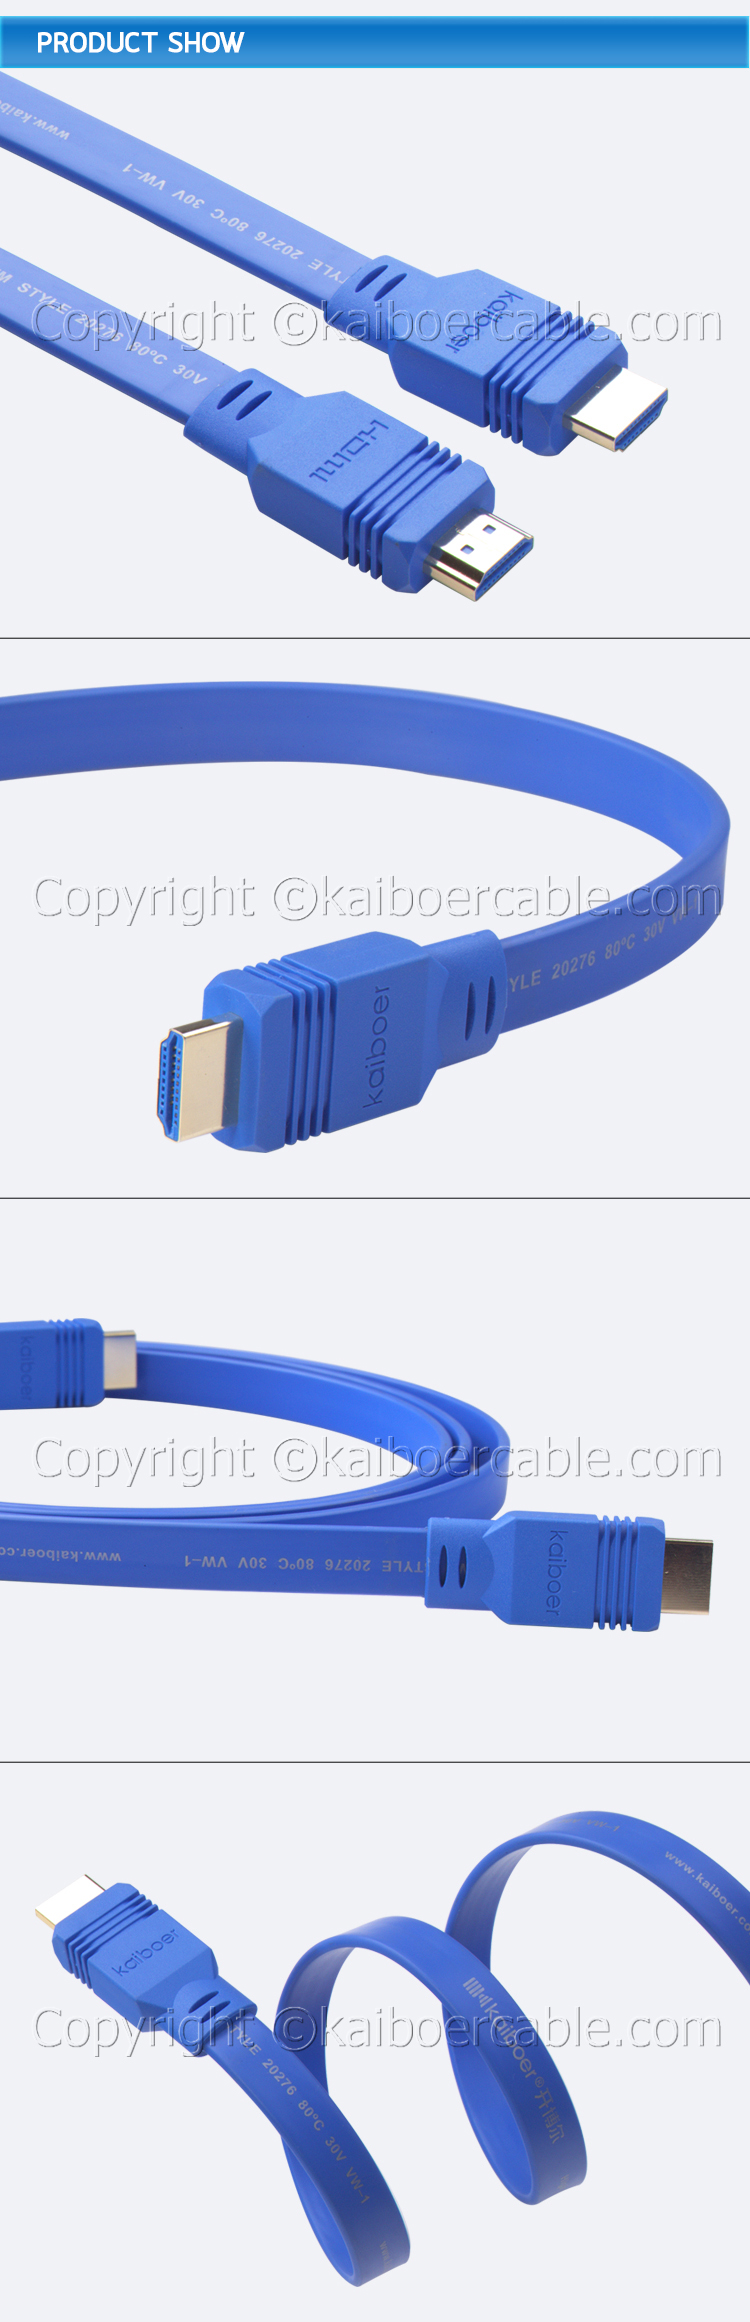 Kaiboer_KBE_HD_Series_Flatline_HDMI_Cable_4